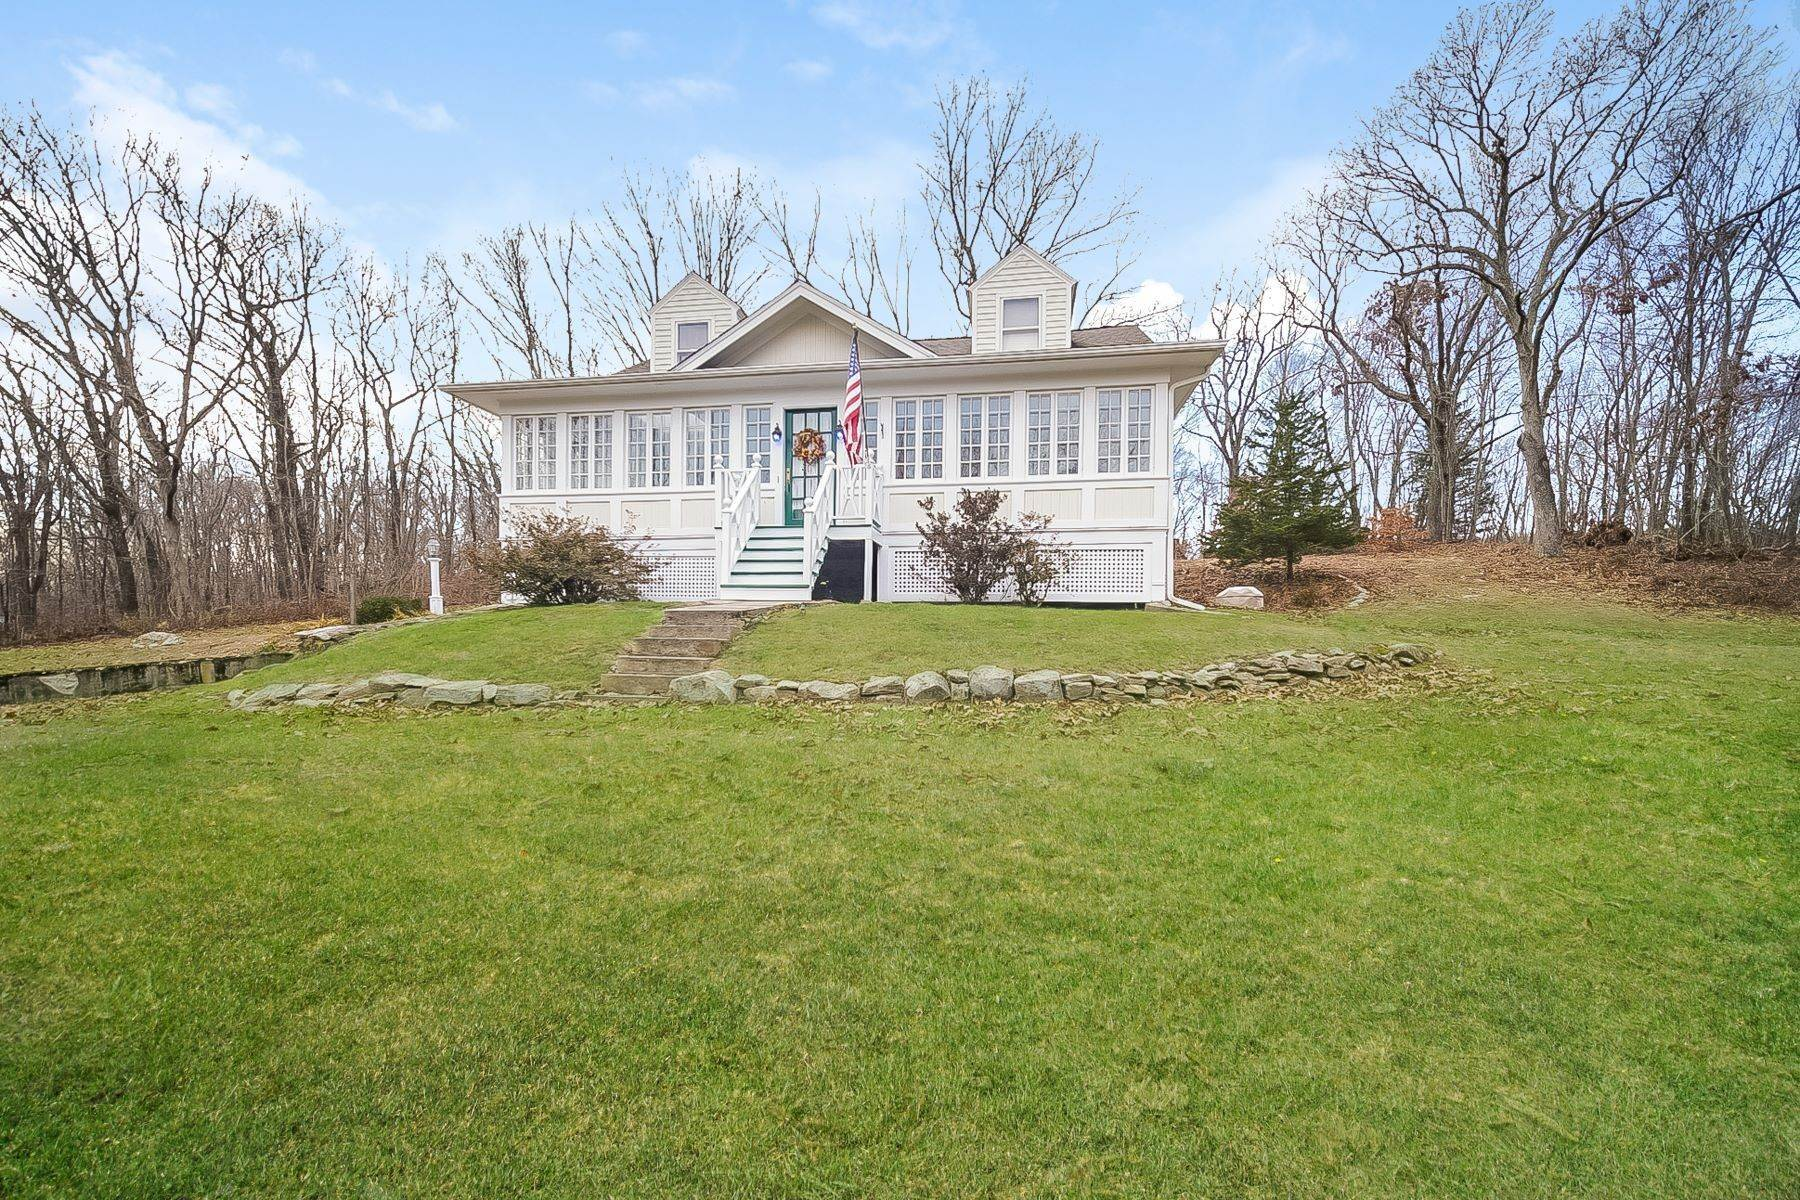 Single Family Homes for Sale at Charming Cape 155 Pepper Street Monroe, Connecticut 06468 United States